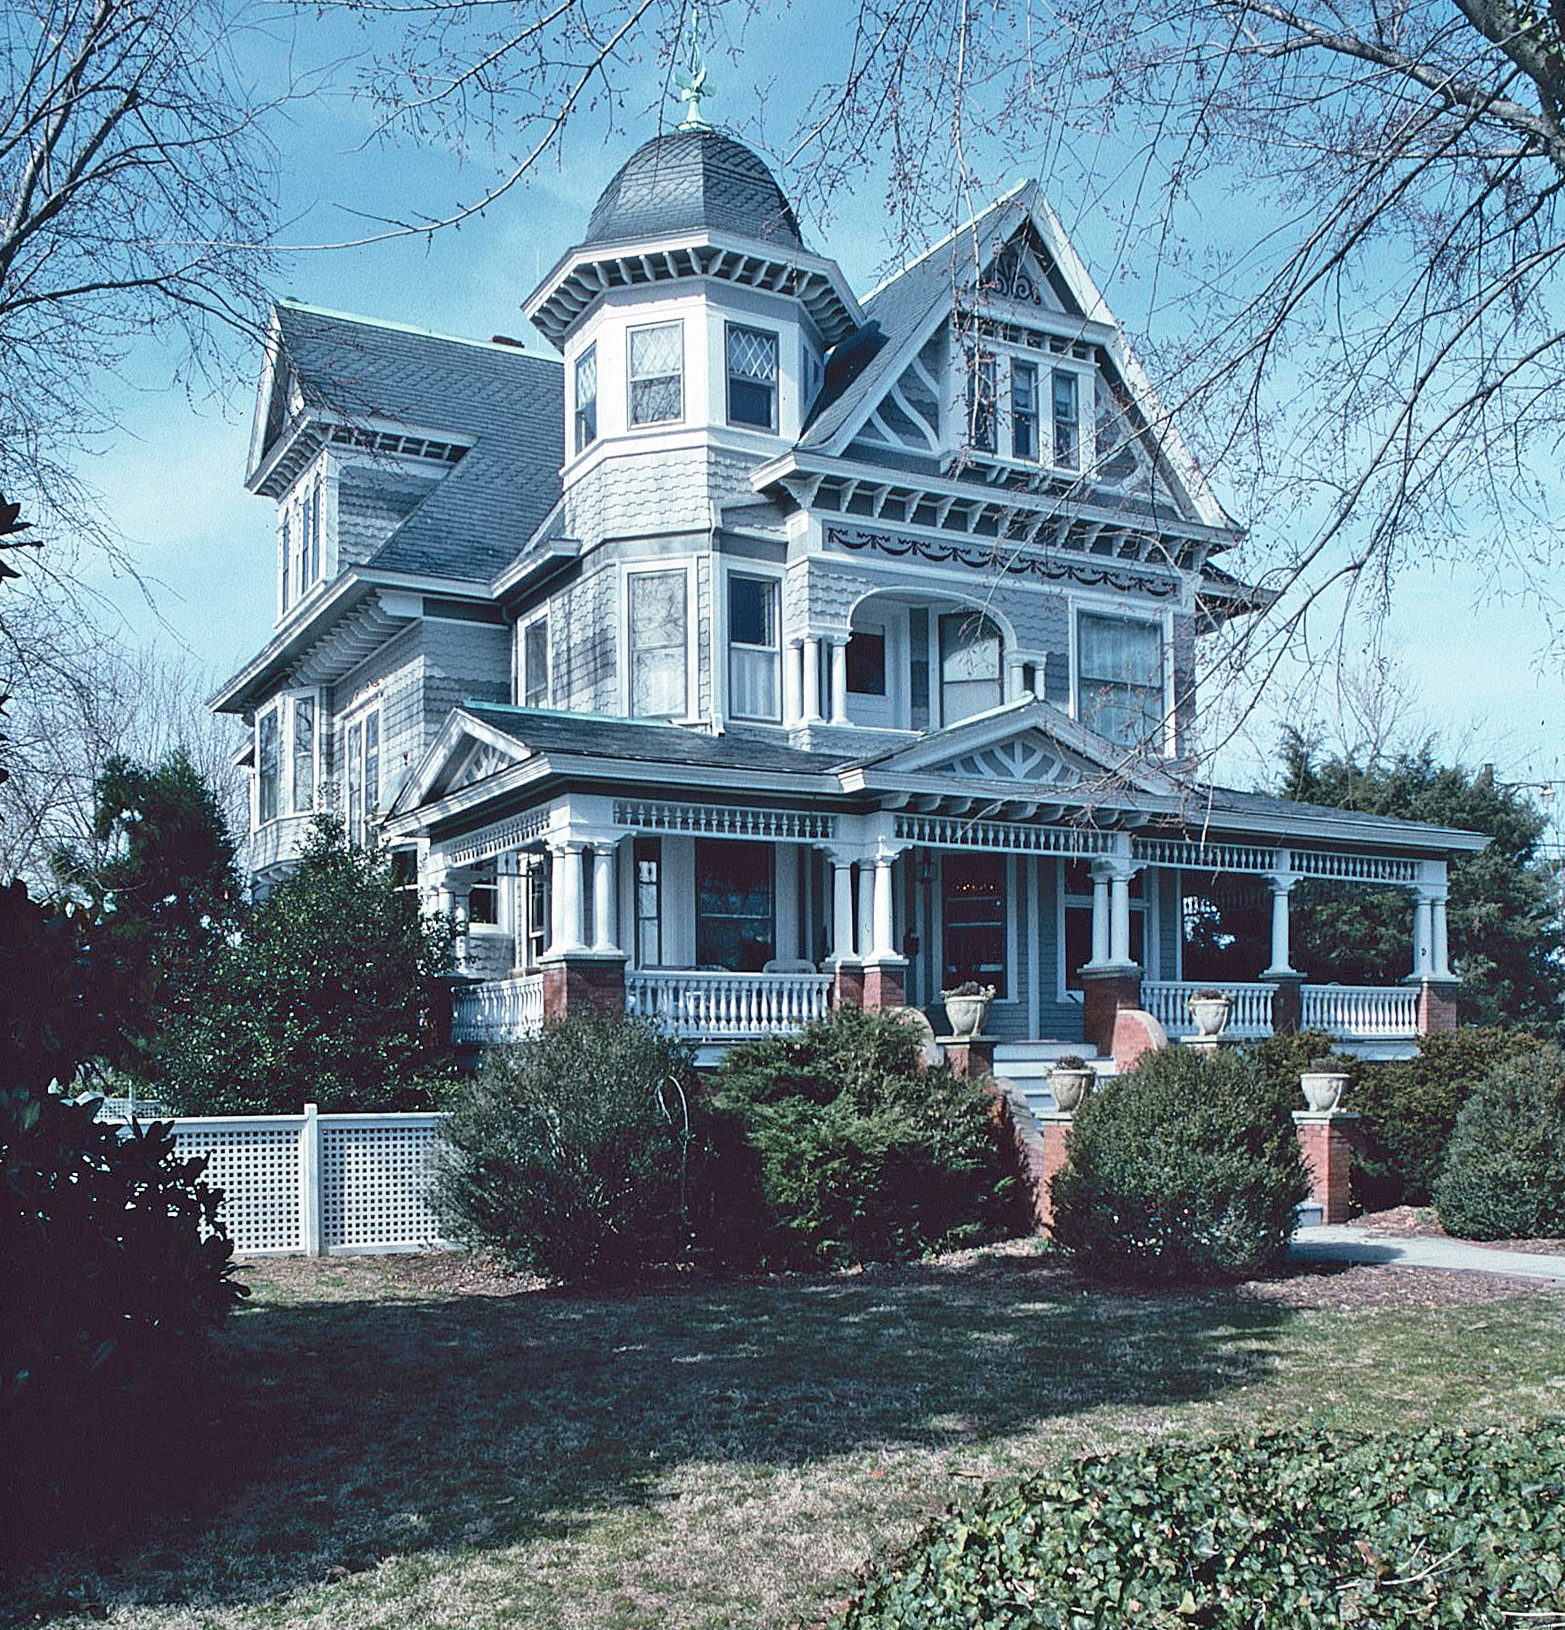 Reedville Historic District